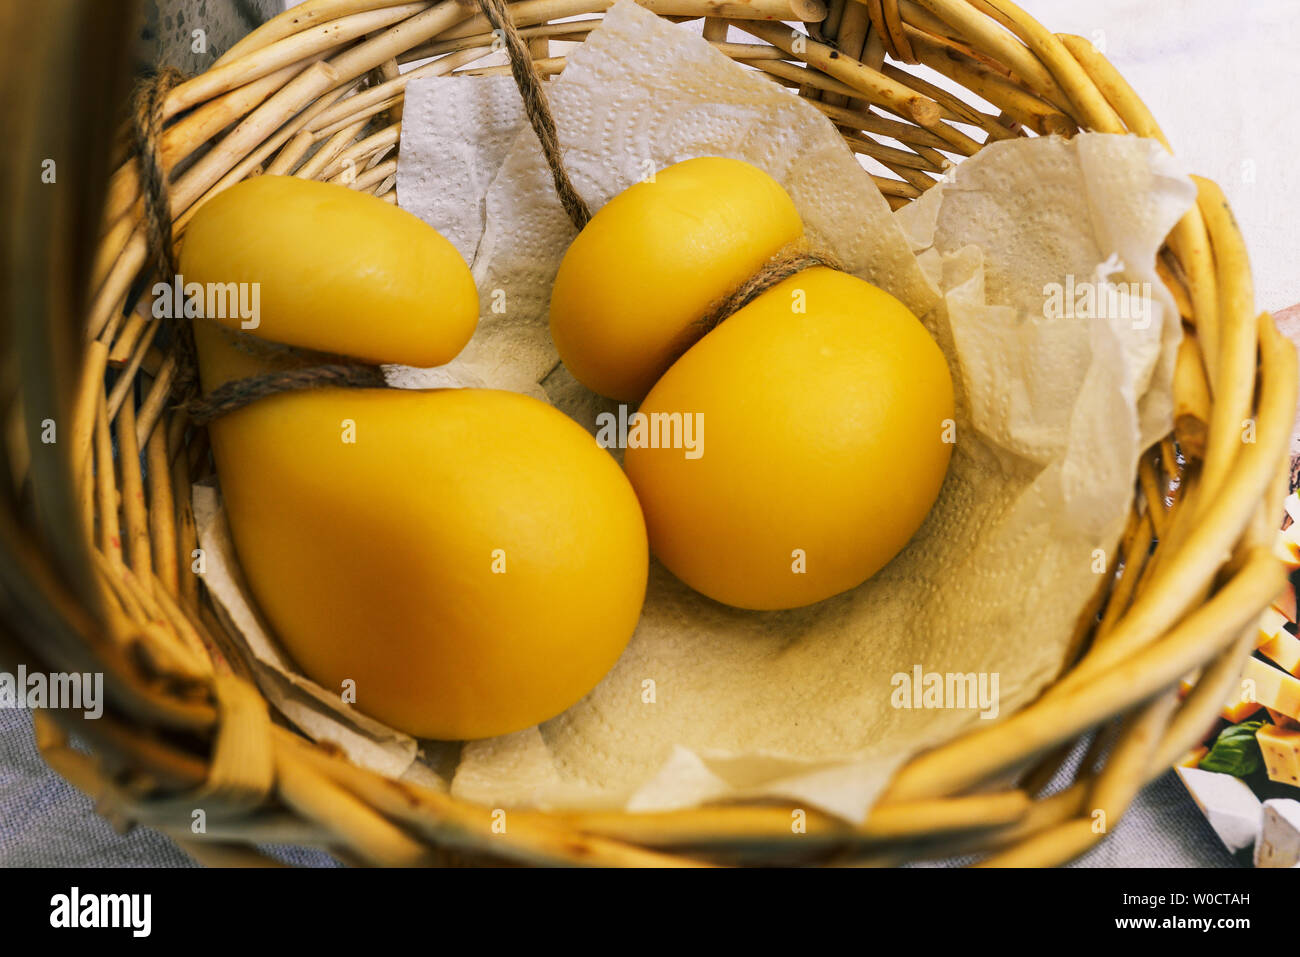 Two yellow cheese heads in a basket. Oval-shaped hard cheese tied with a rope. Production and sale of cheese. Organic Product - Stock Image